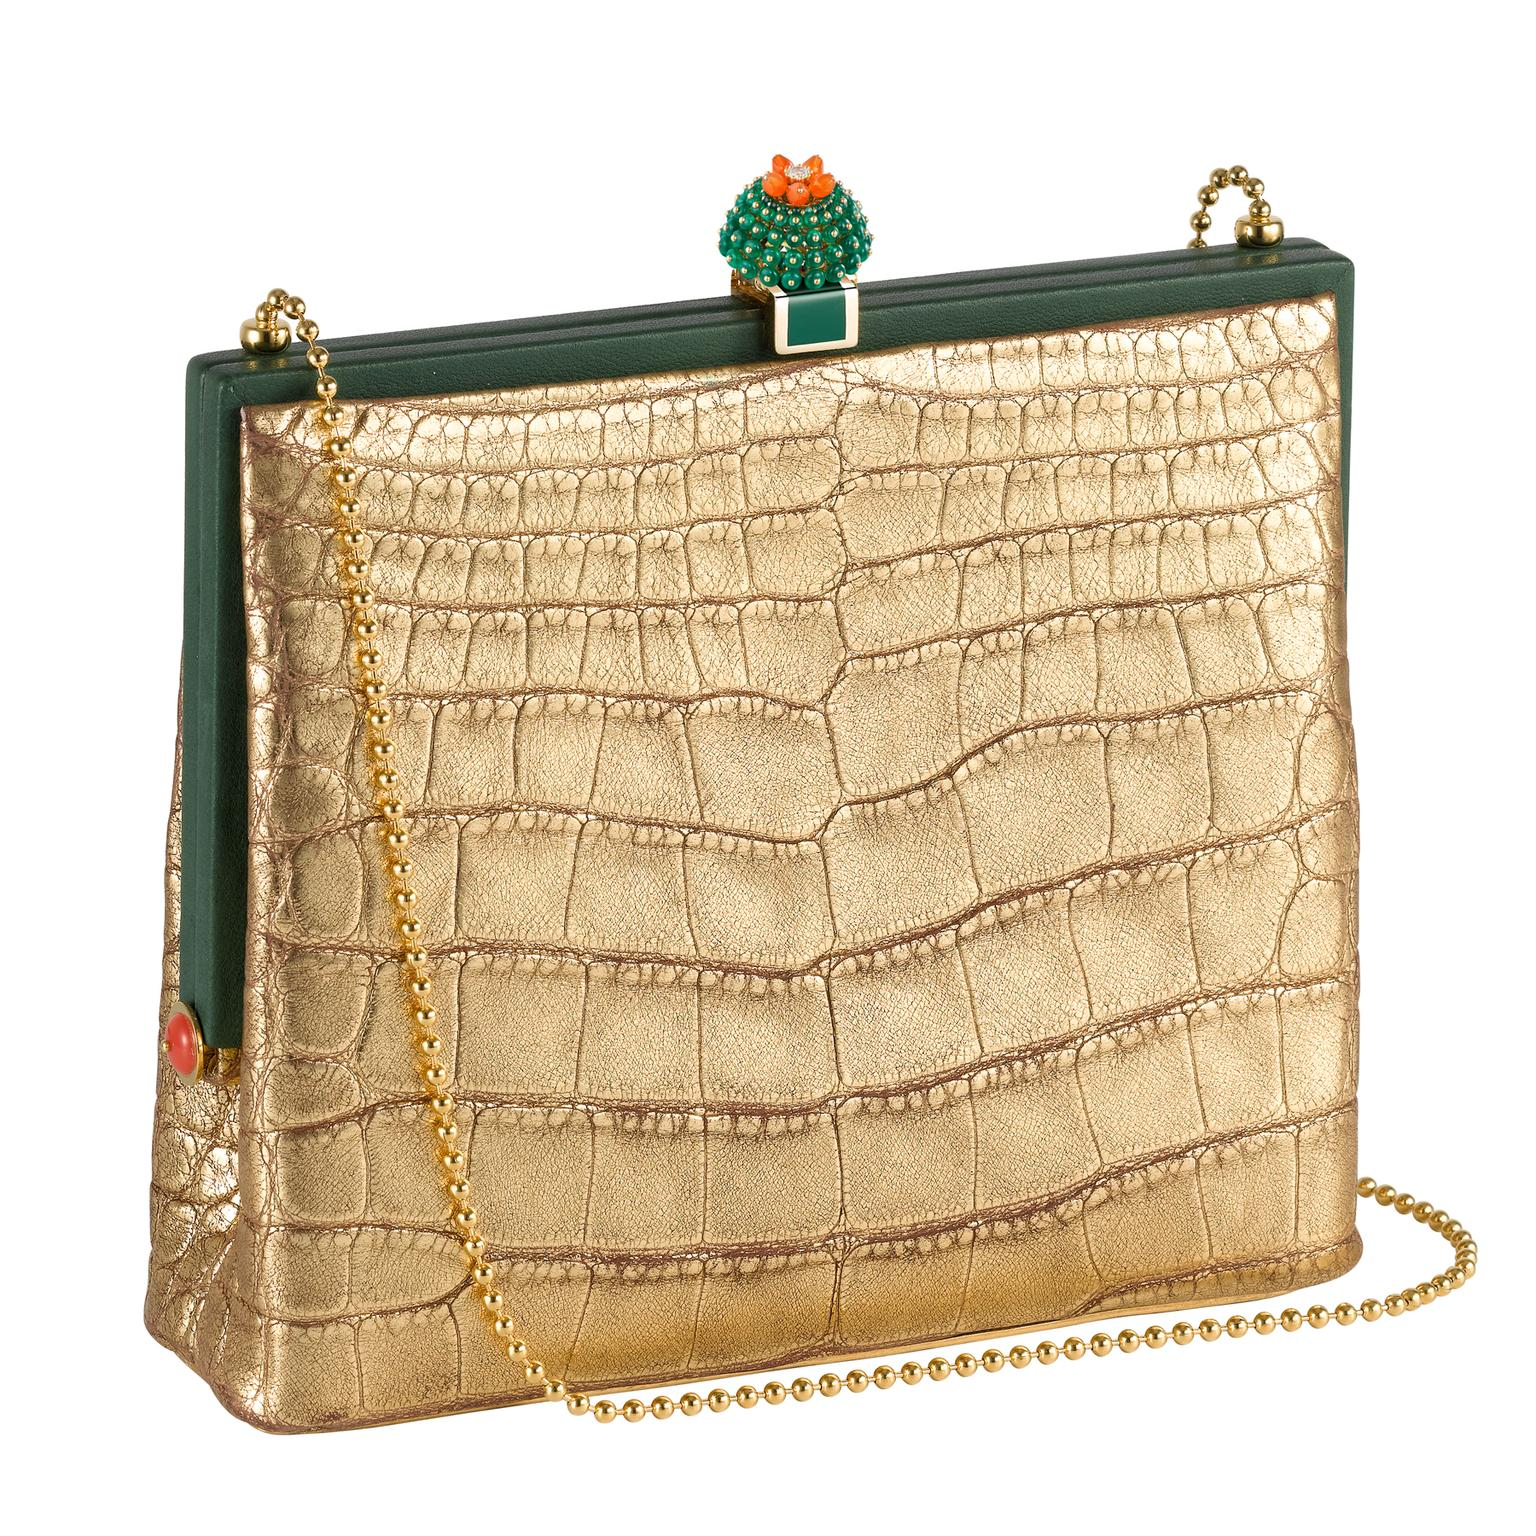 Gold Cactus de Cartier handbag